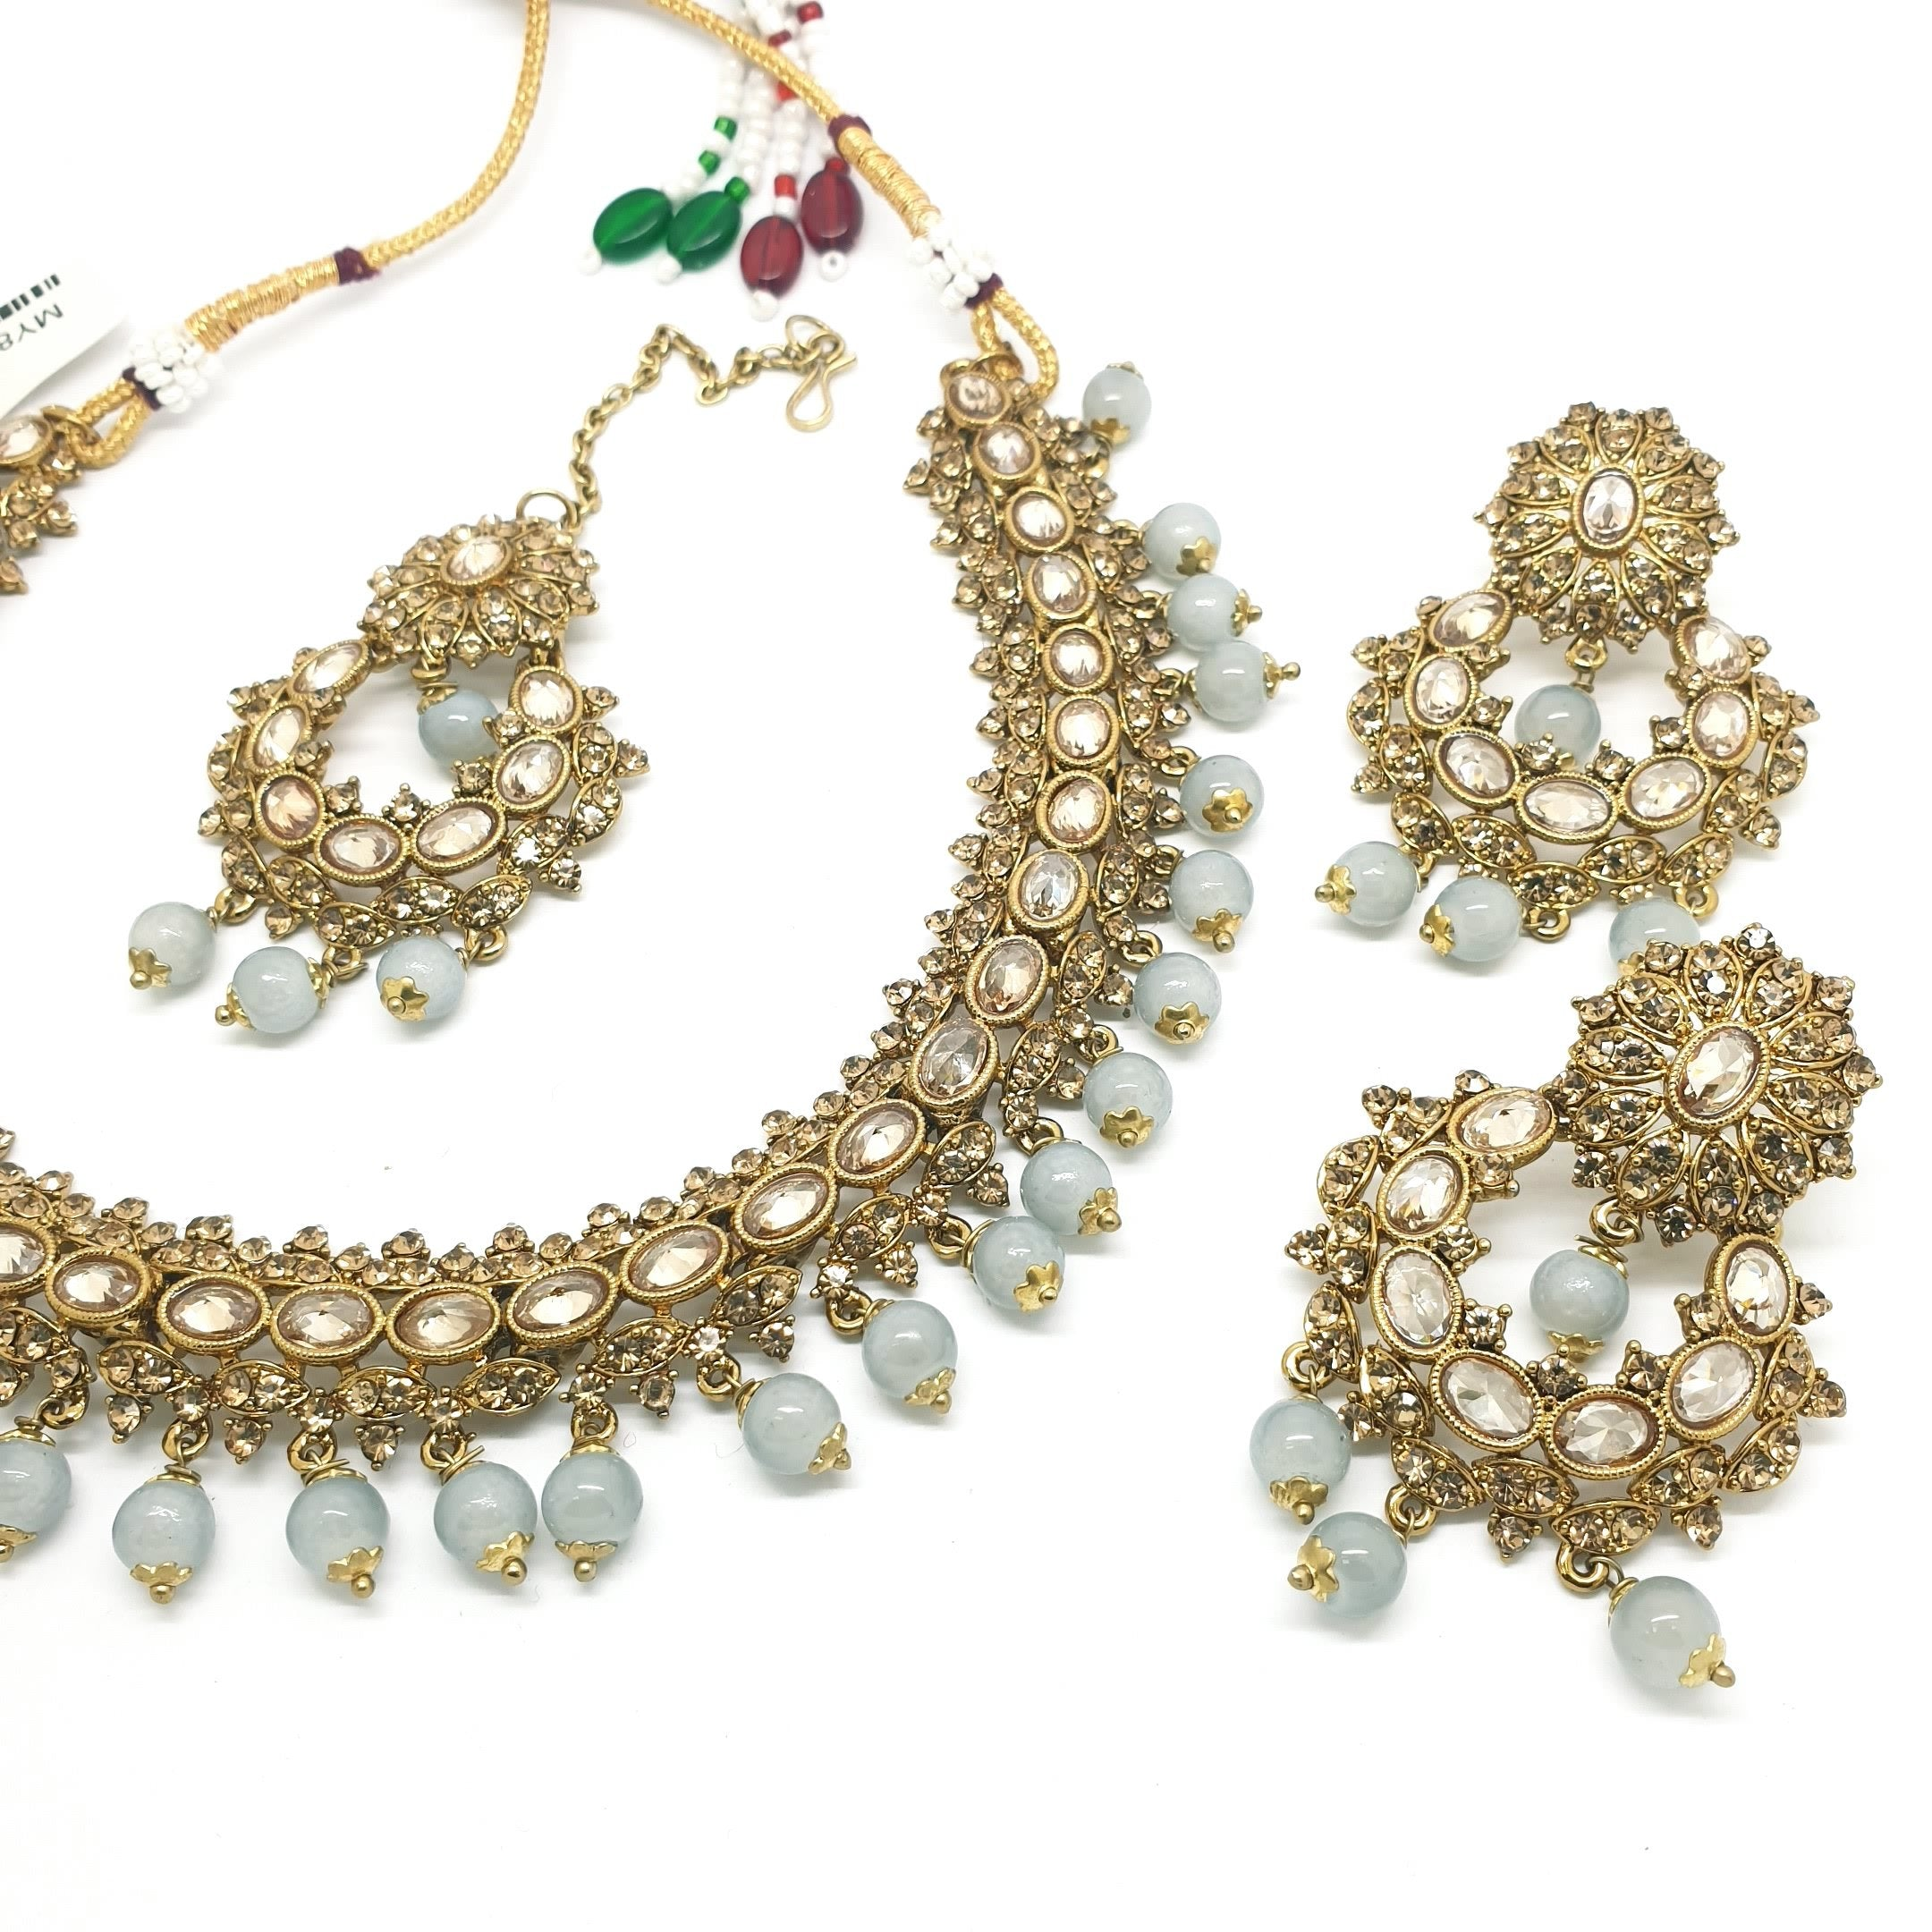 Reverse Stone Indian Fashion Jewellery set - with necklace, earrings and Tika MY8826 KP0719